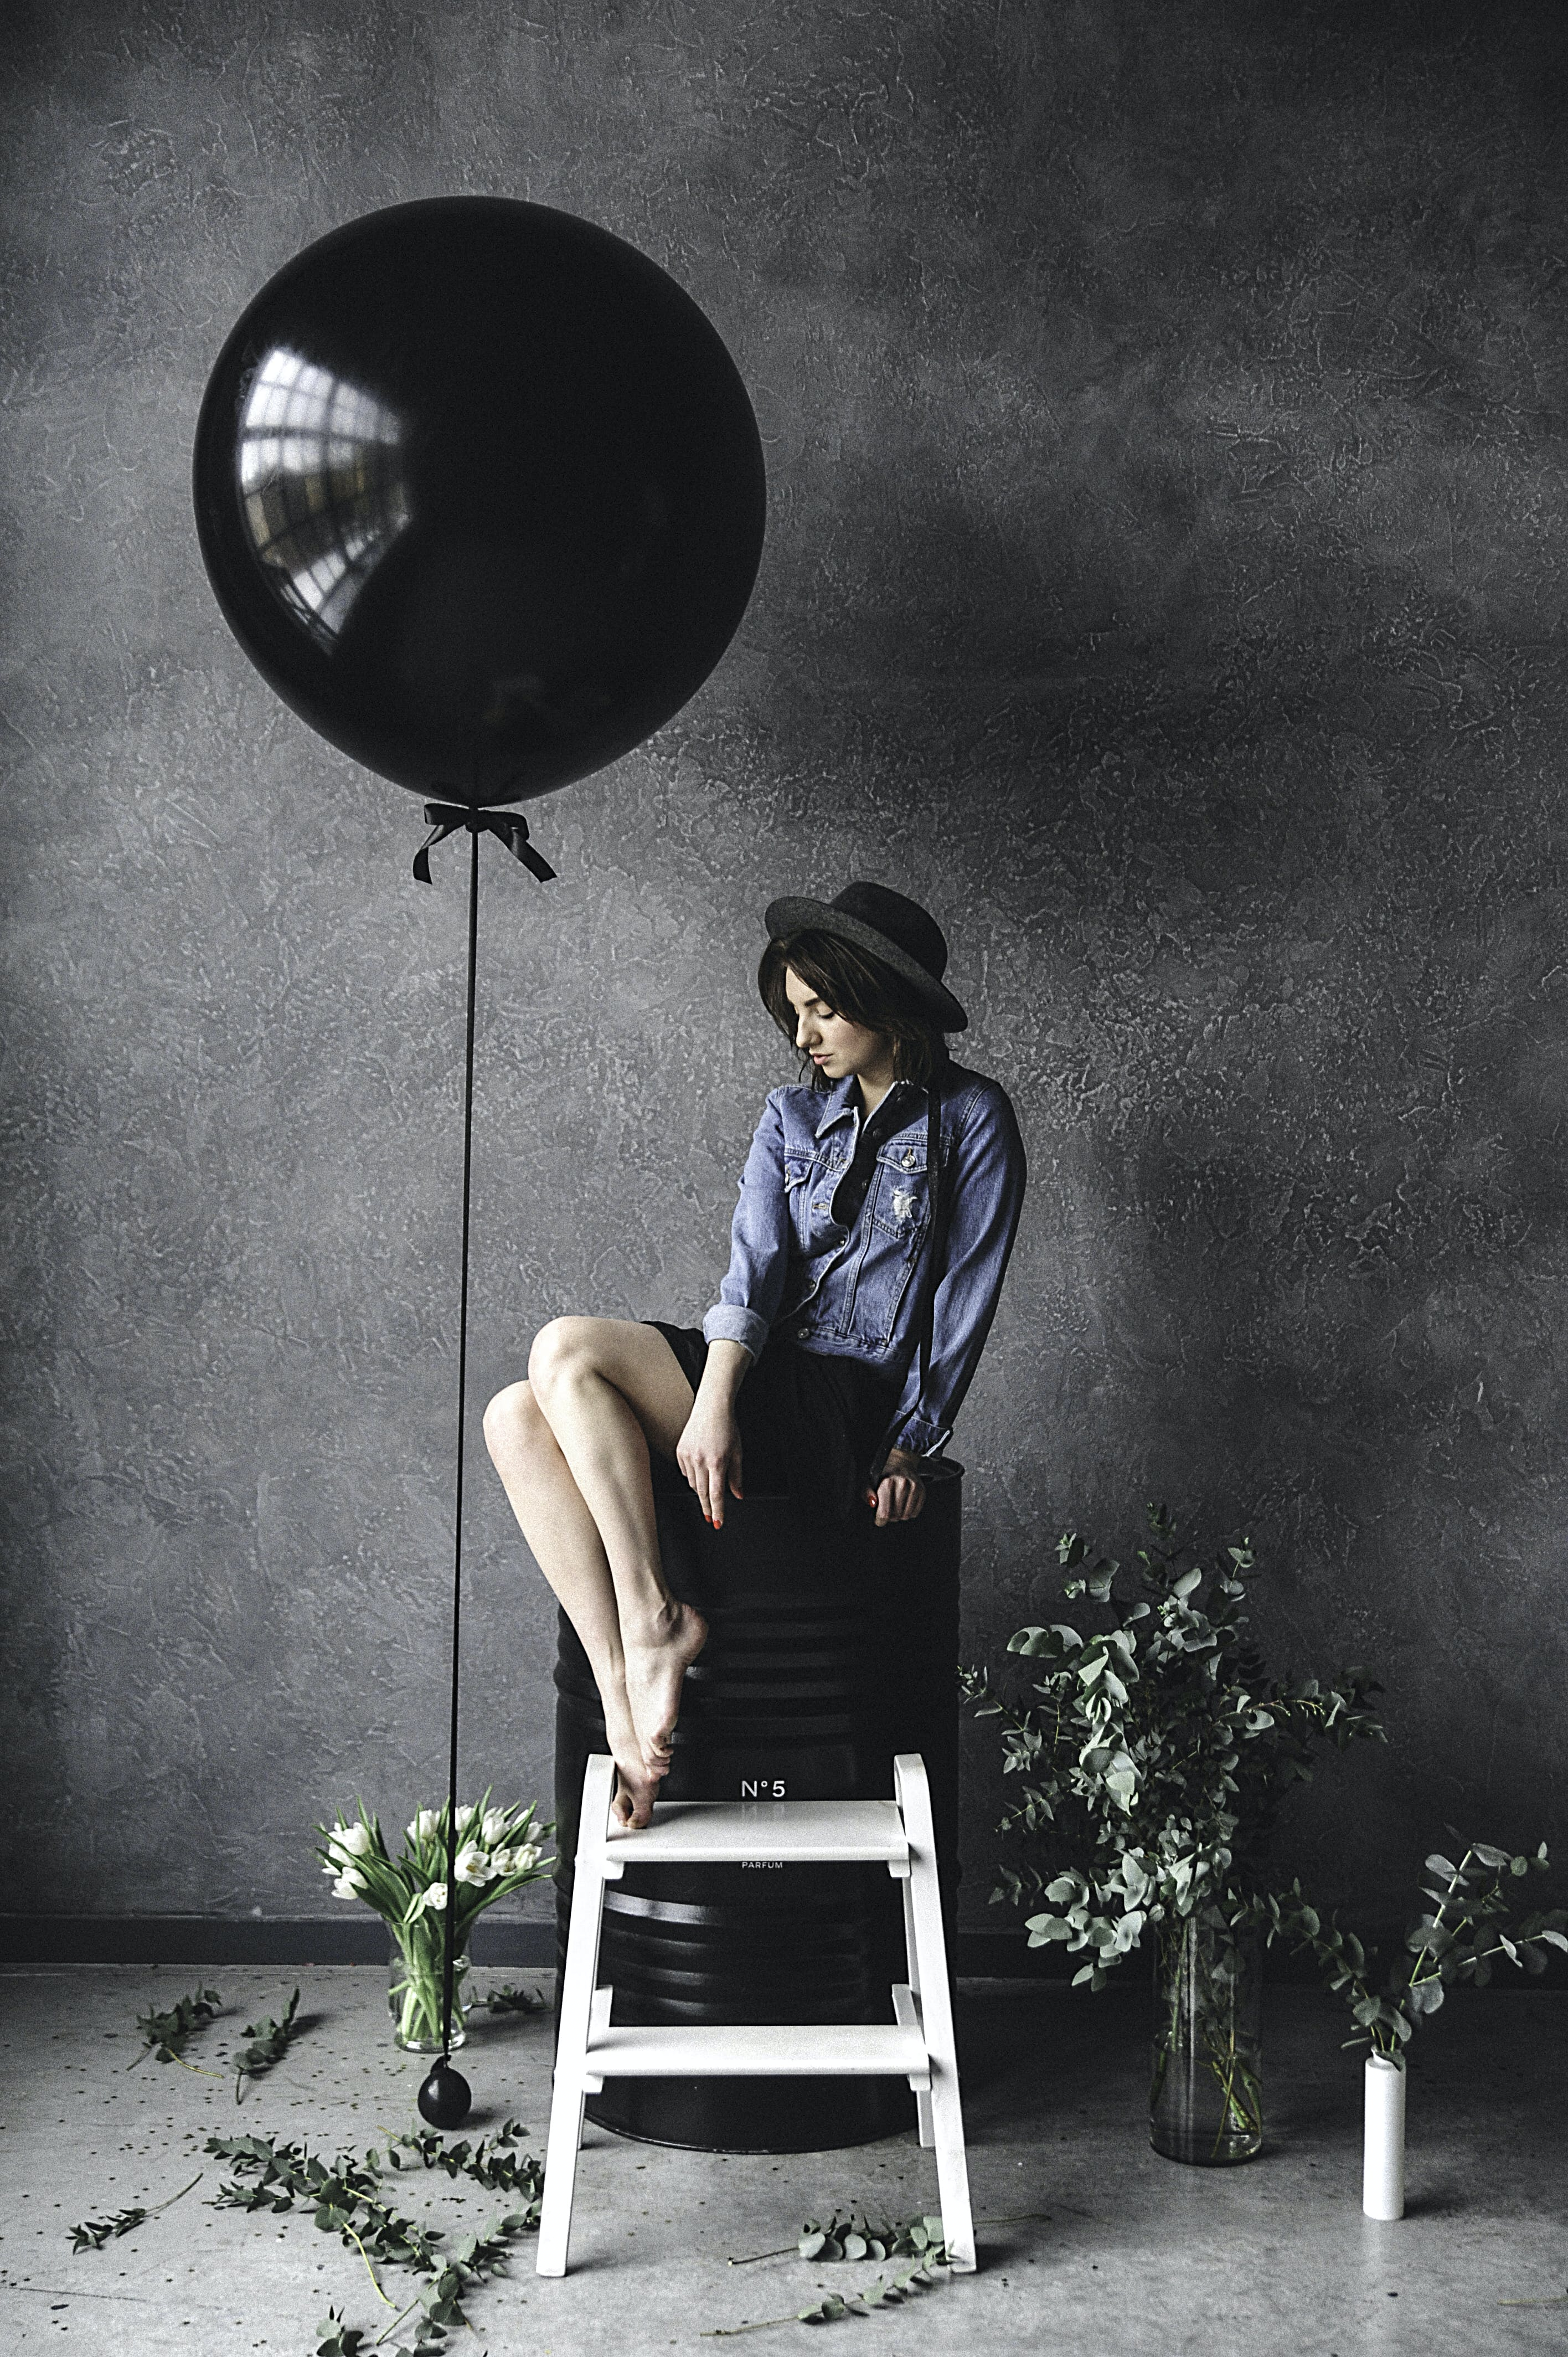 Woman Sitting on Chair Beside Balloon